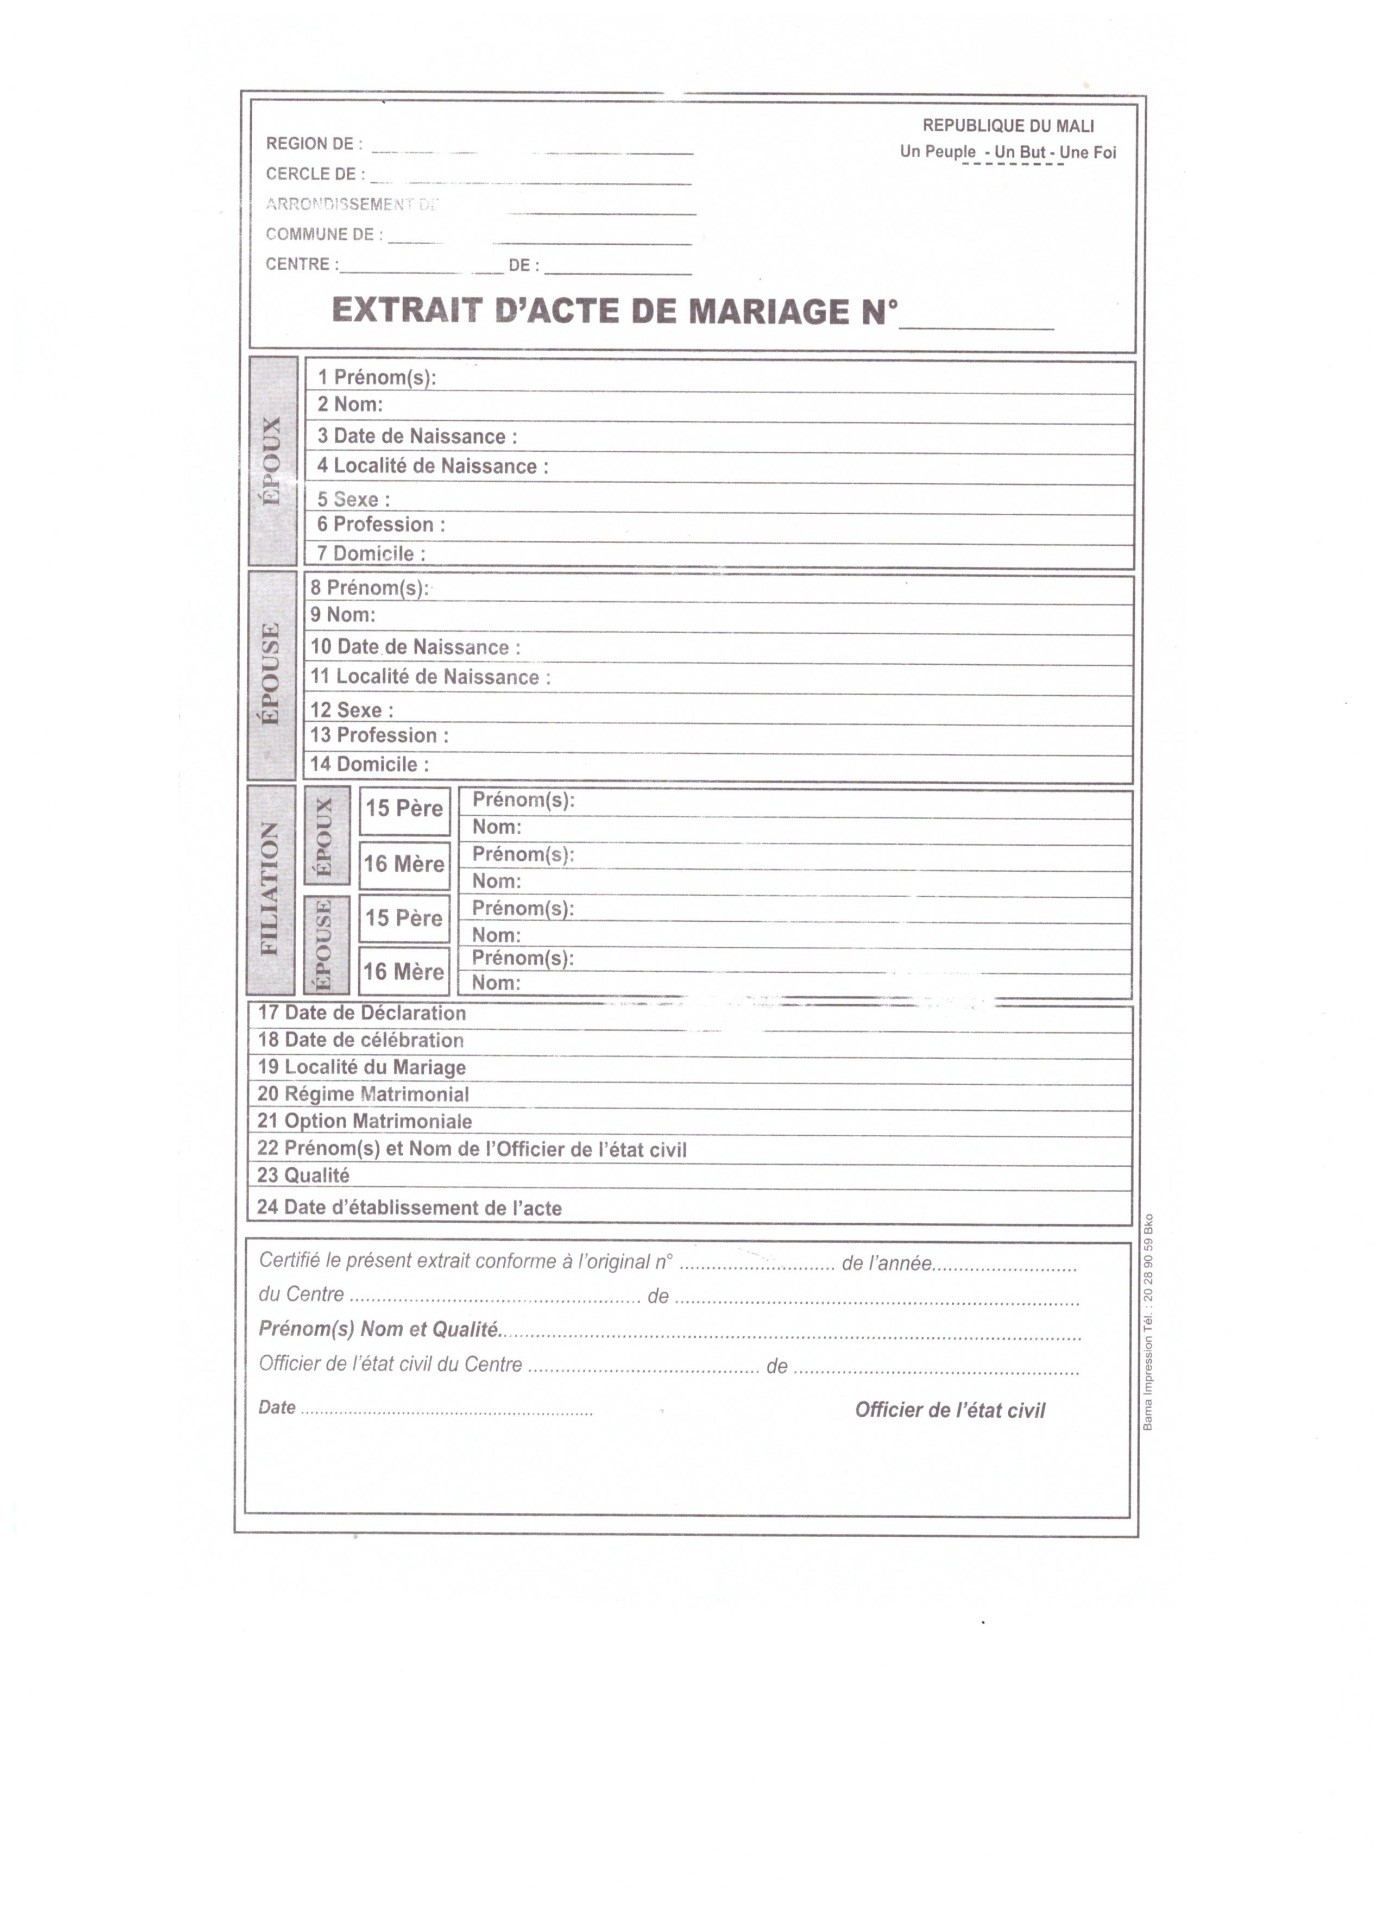 Mali unicef data download sample birth certificate yelopaper Image collections